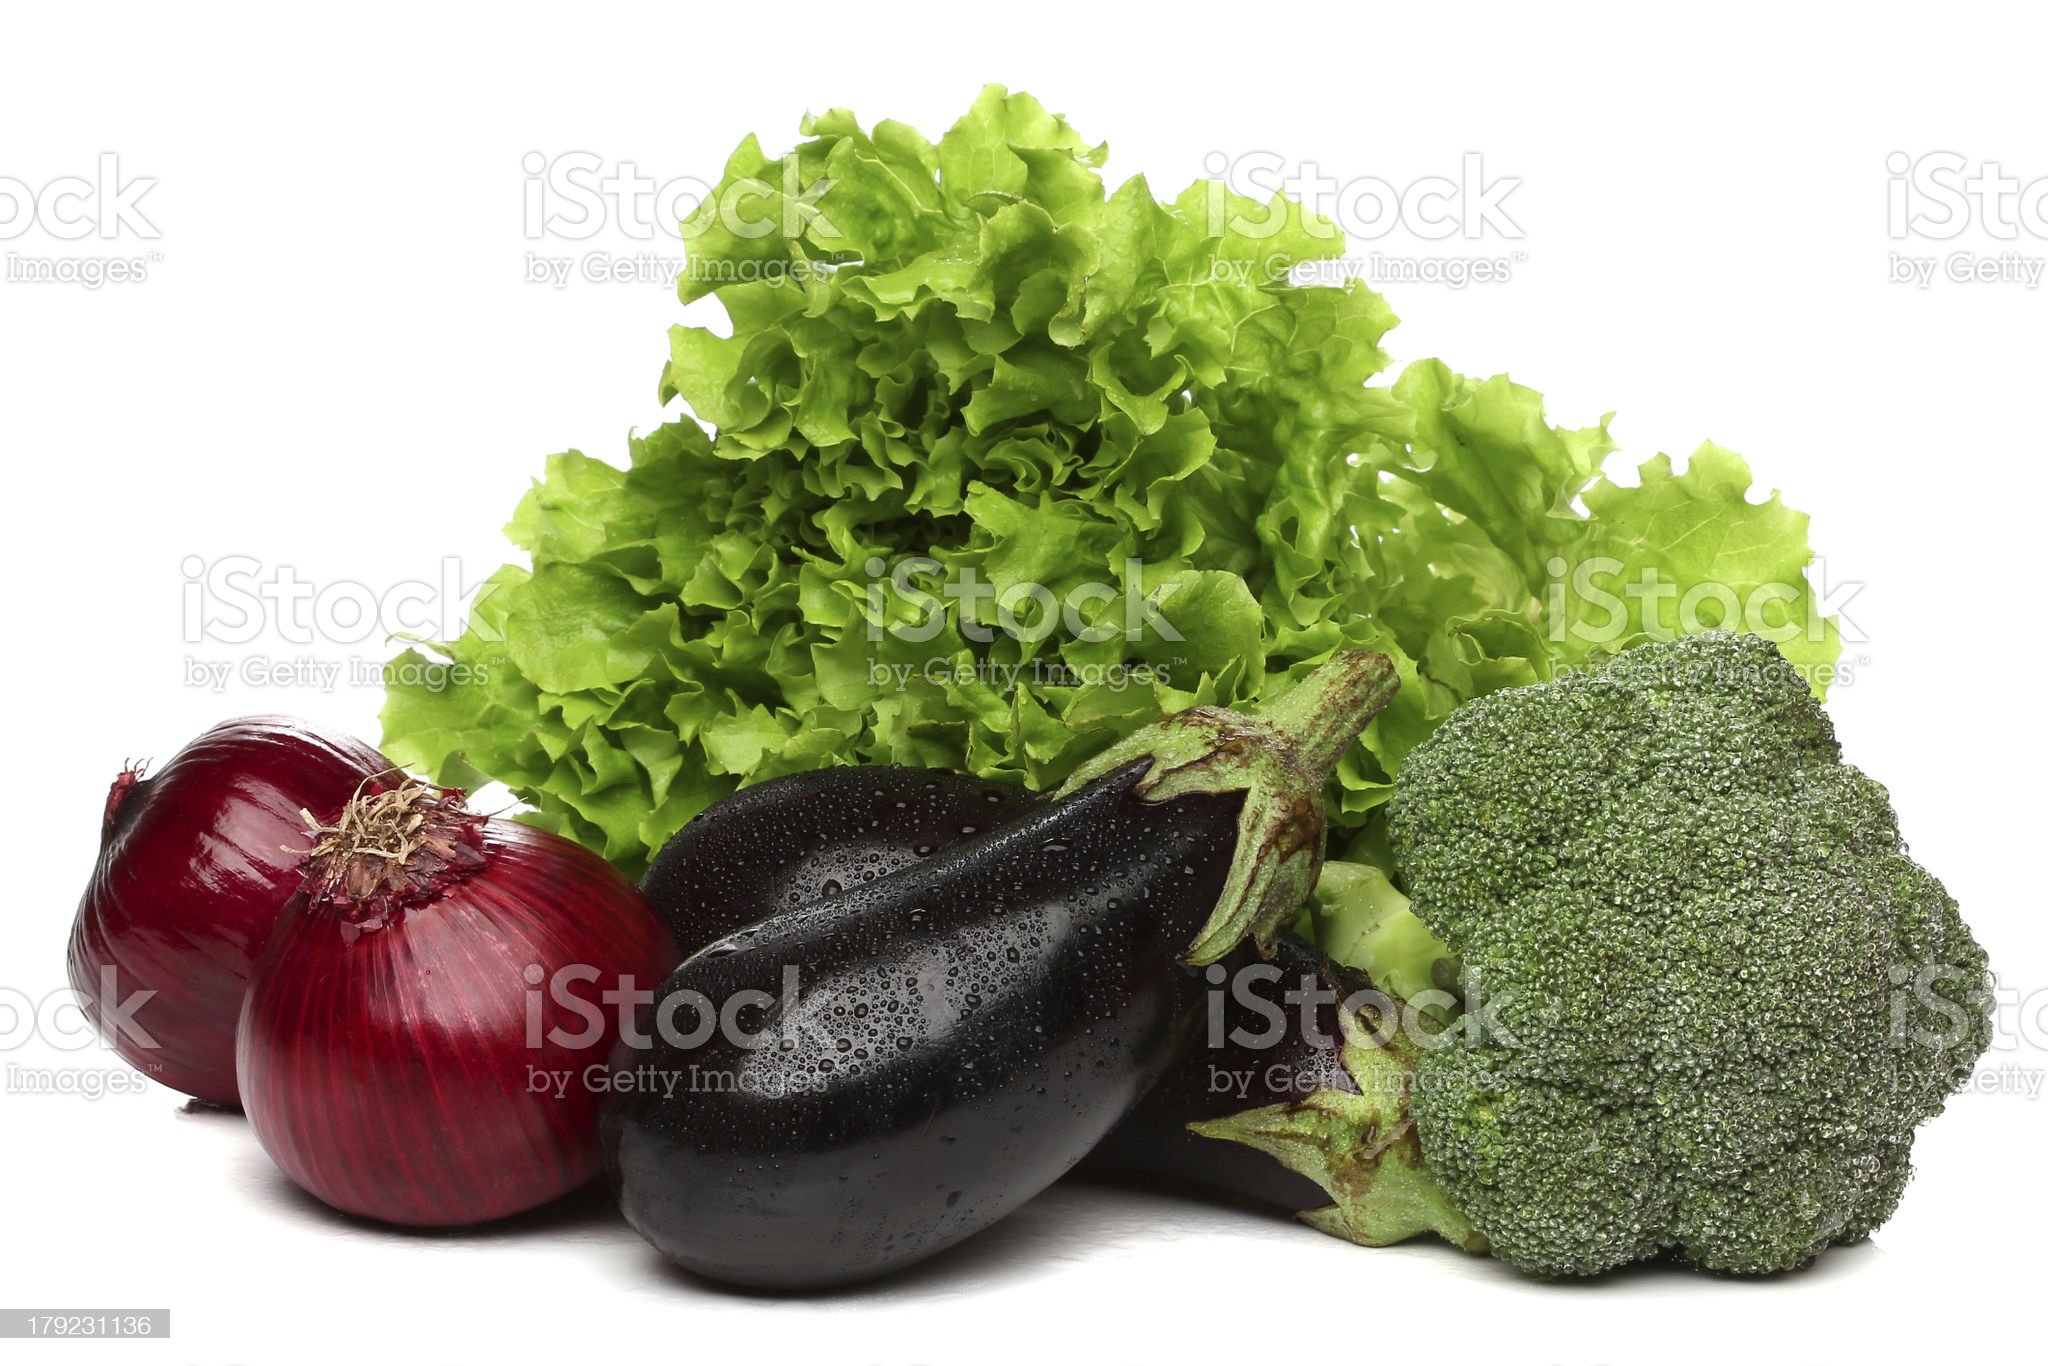 Delicious group of vegetables royalty-free stock photo